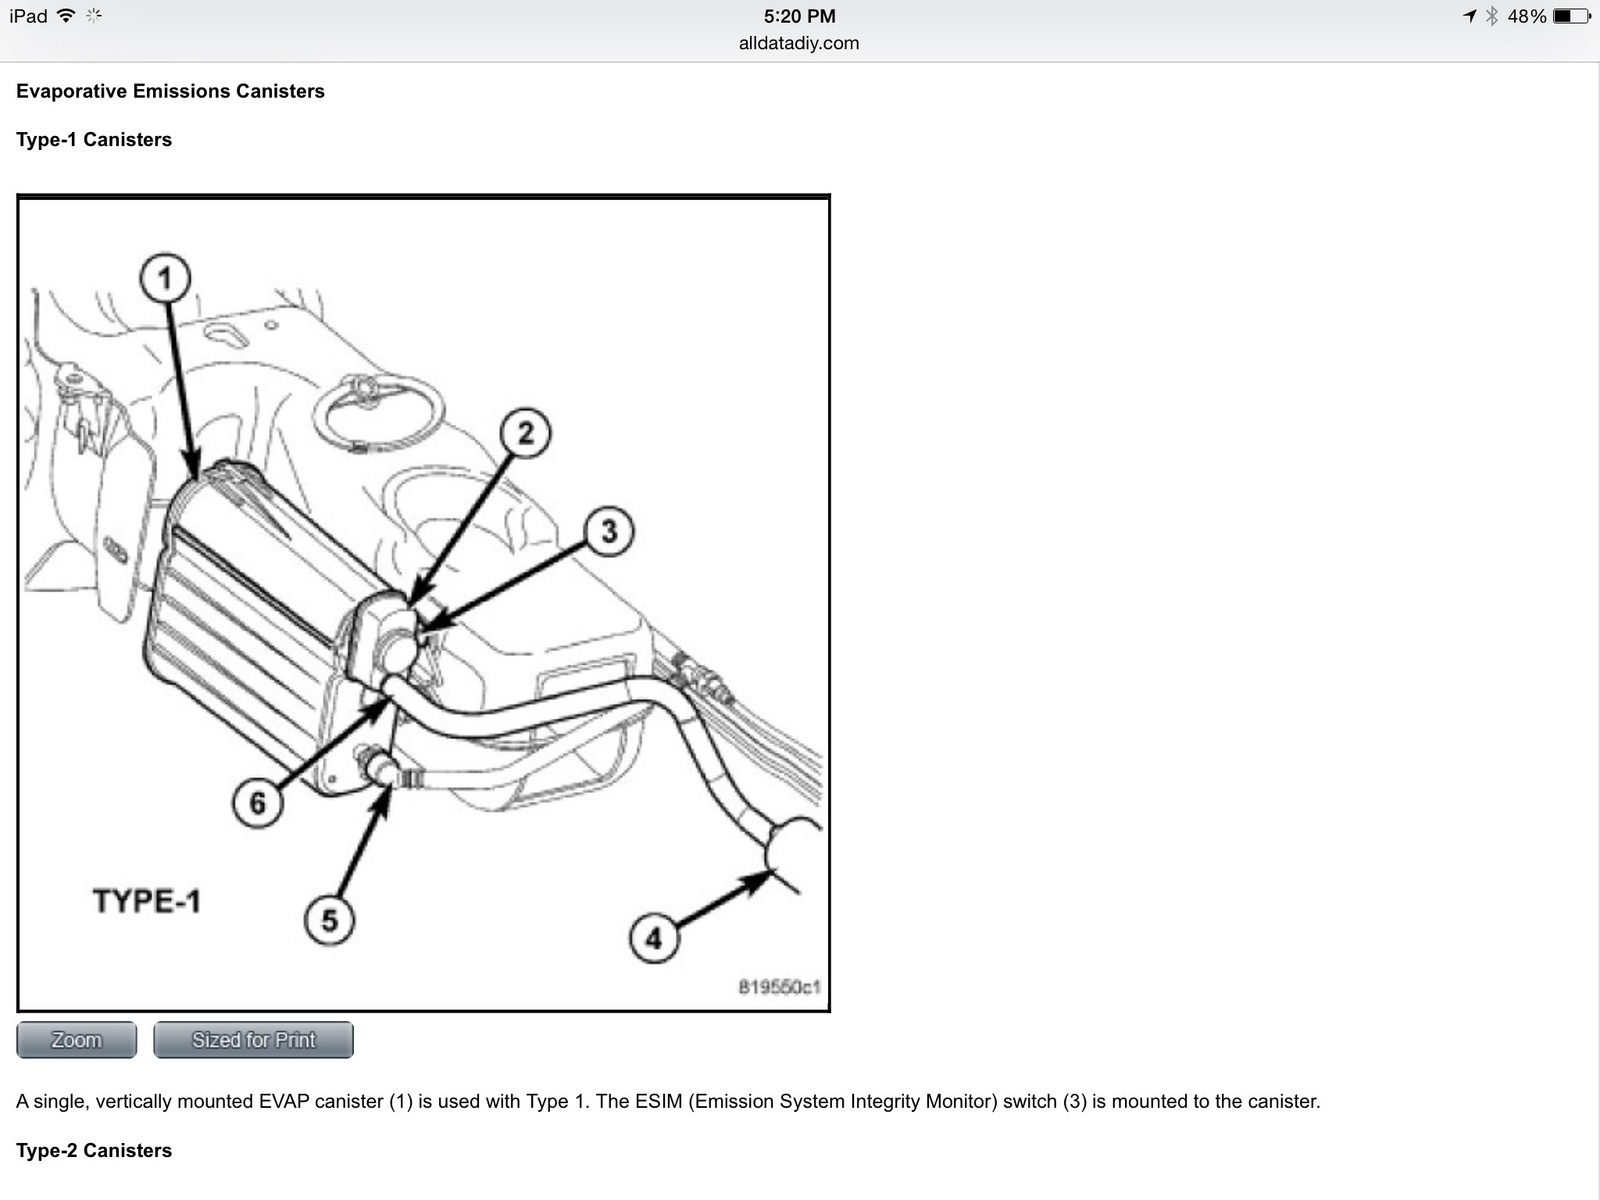 2000 Dodge Dakota Exhaust System Diagram also 1361889 Vacuum Line R R On 1988 F150 302 5 0l likewise 712966 O2 Sensor Replacement 2004 Es330 Bank 1 Sensor 2 A in addition 214538 06 300c Wiring Diagram as well 1992 Mercruiser 4 3 Engine Diagram. on 2000 jeep cherokee exhaust system diagram